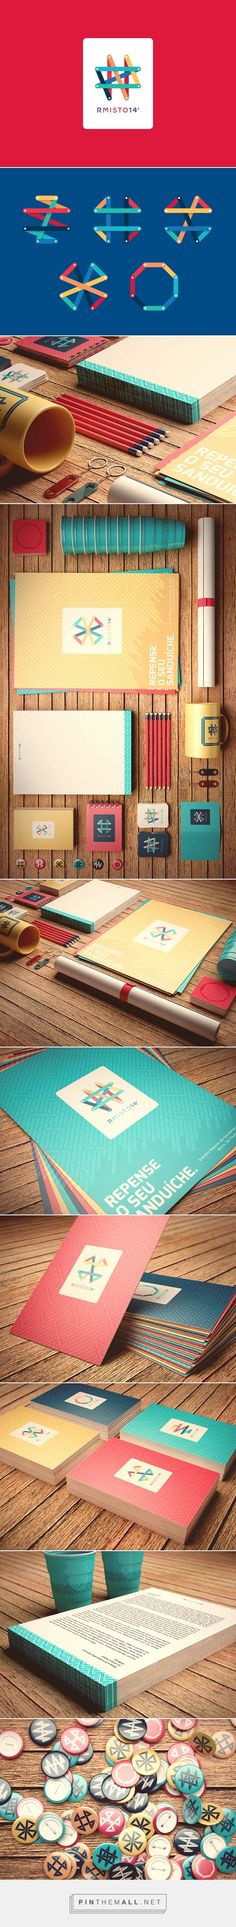 R Misto 14' Branding on Behance | Fivestar Branding – Design and Branding Agency & Inspiration Gallery